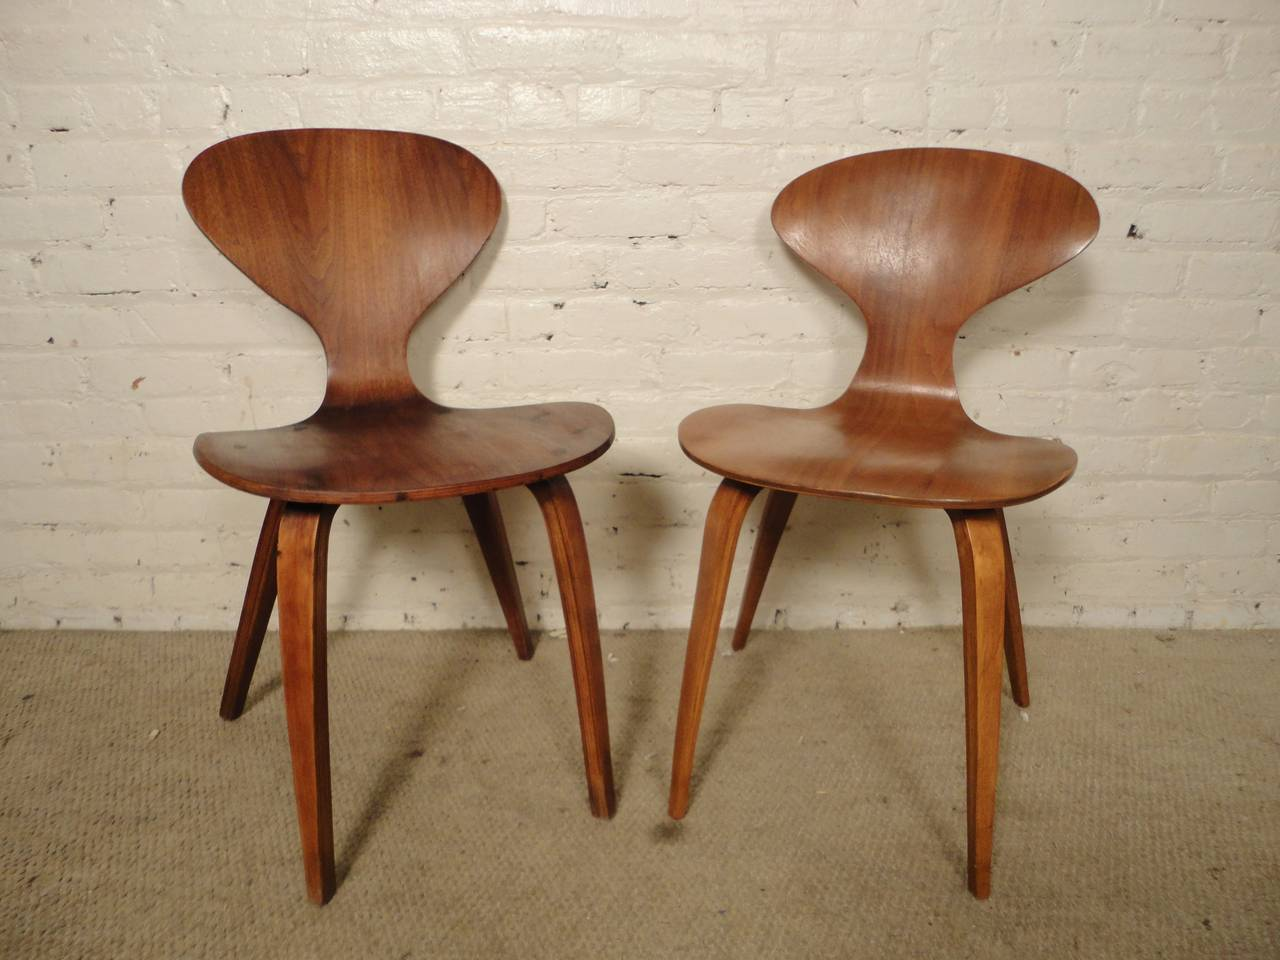 Classic mid-century modern designed bentwood chairs by Norman Cherner for Plycraft. Great lines and curves throughout, all made by bending the wood with extreme steam pressure. A very sleek addition to your dinning room.